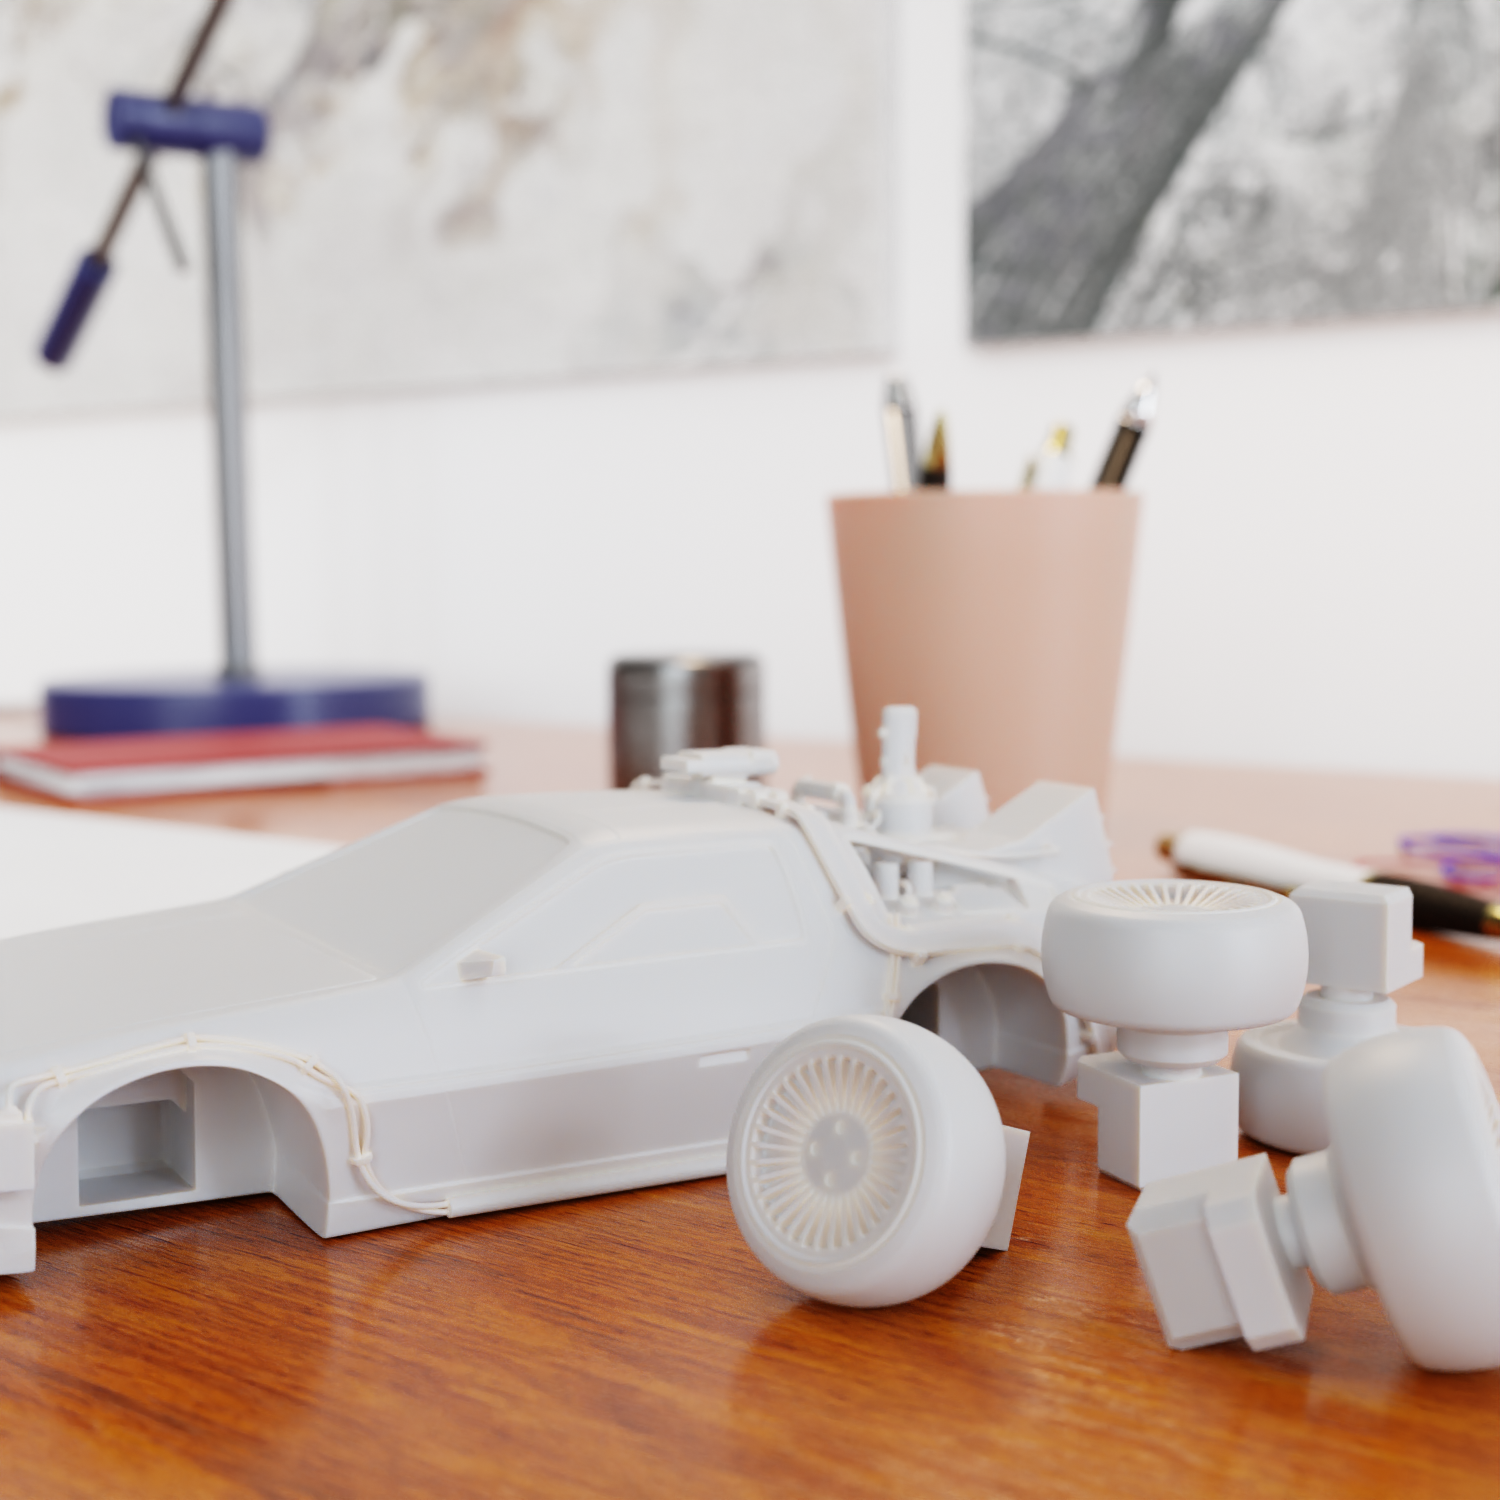 Smontata.png Download STL file Time Machine DeLorean DMC-12 from Back to the future • 3D printing model, Alessandro_Palma